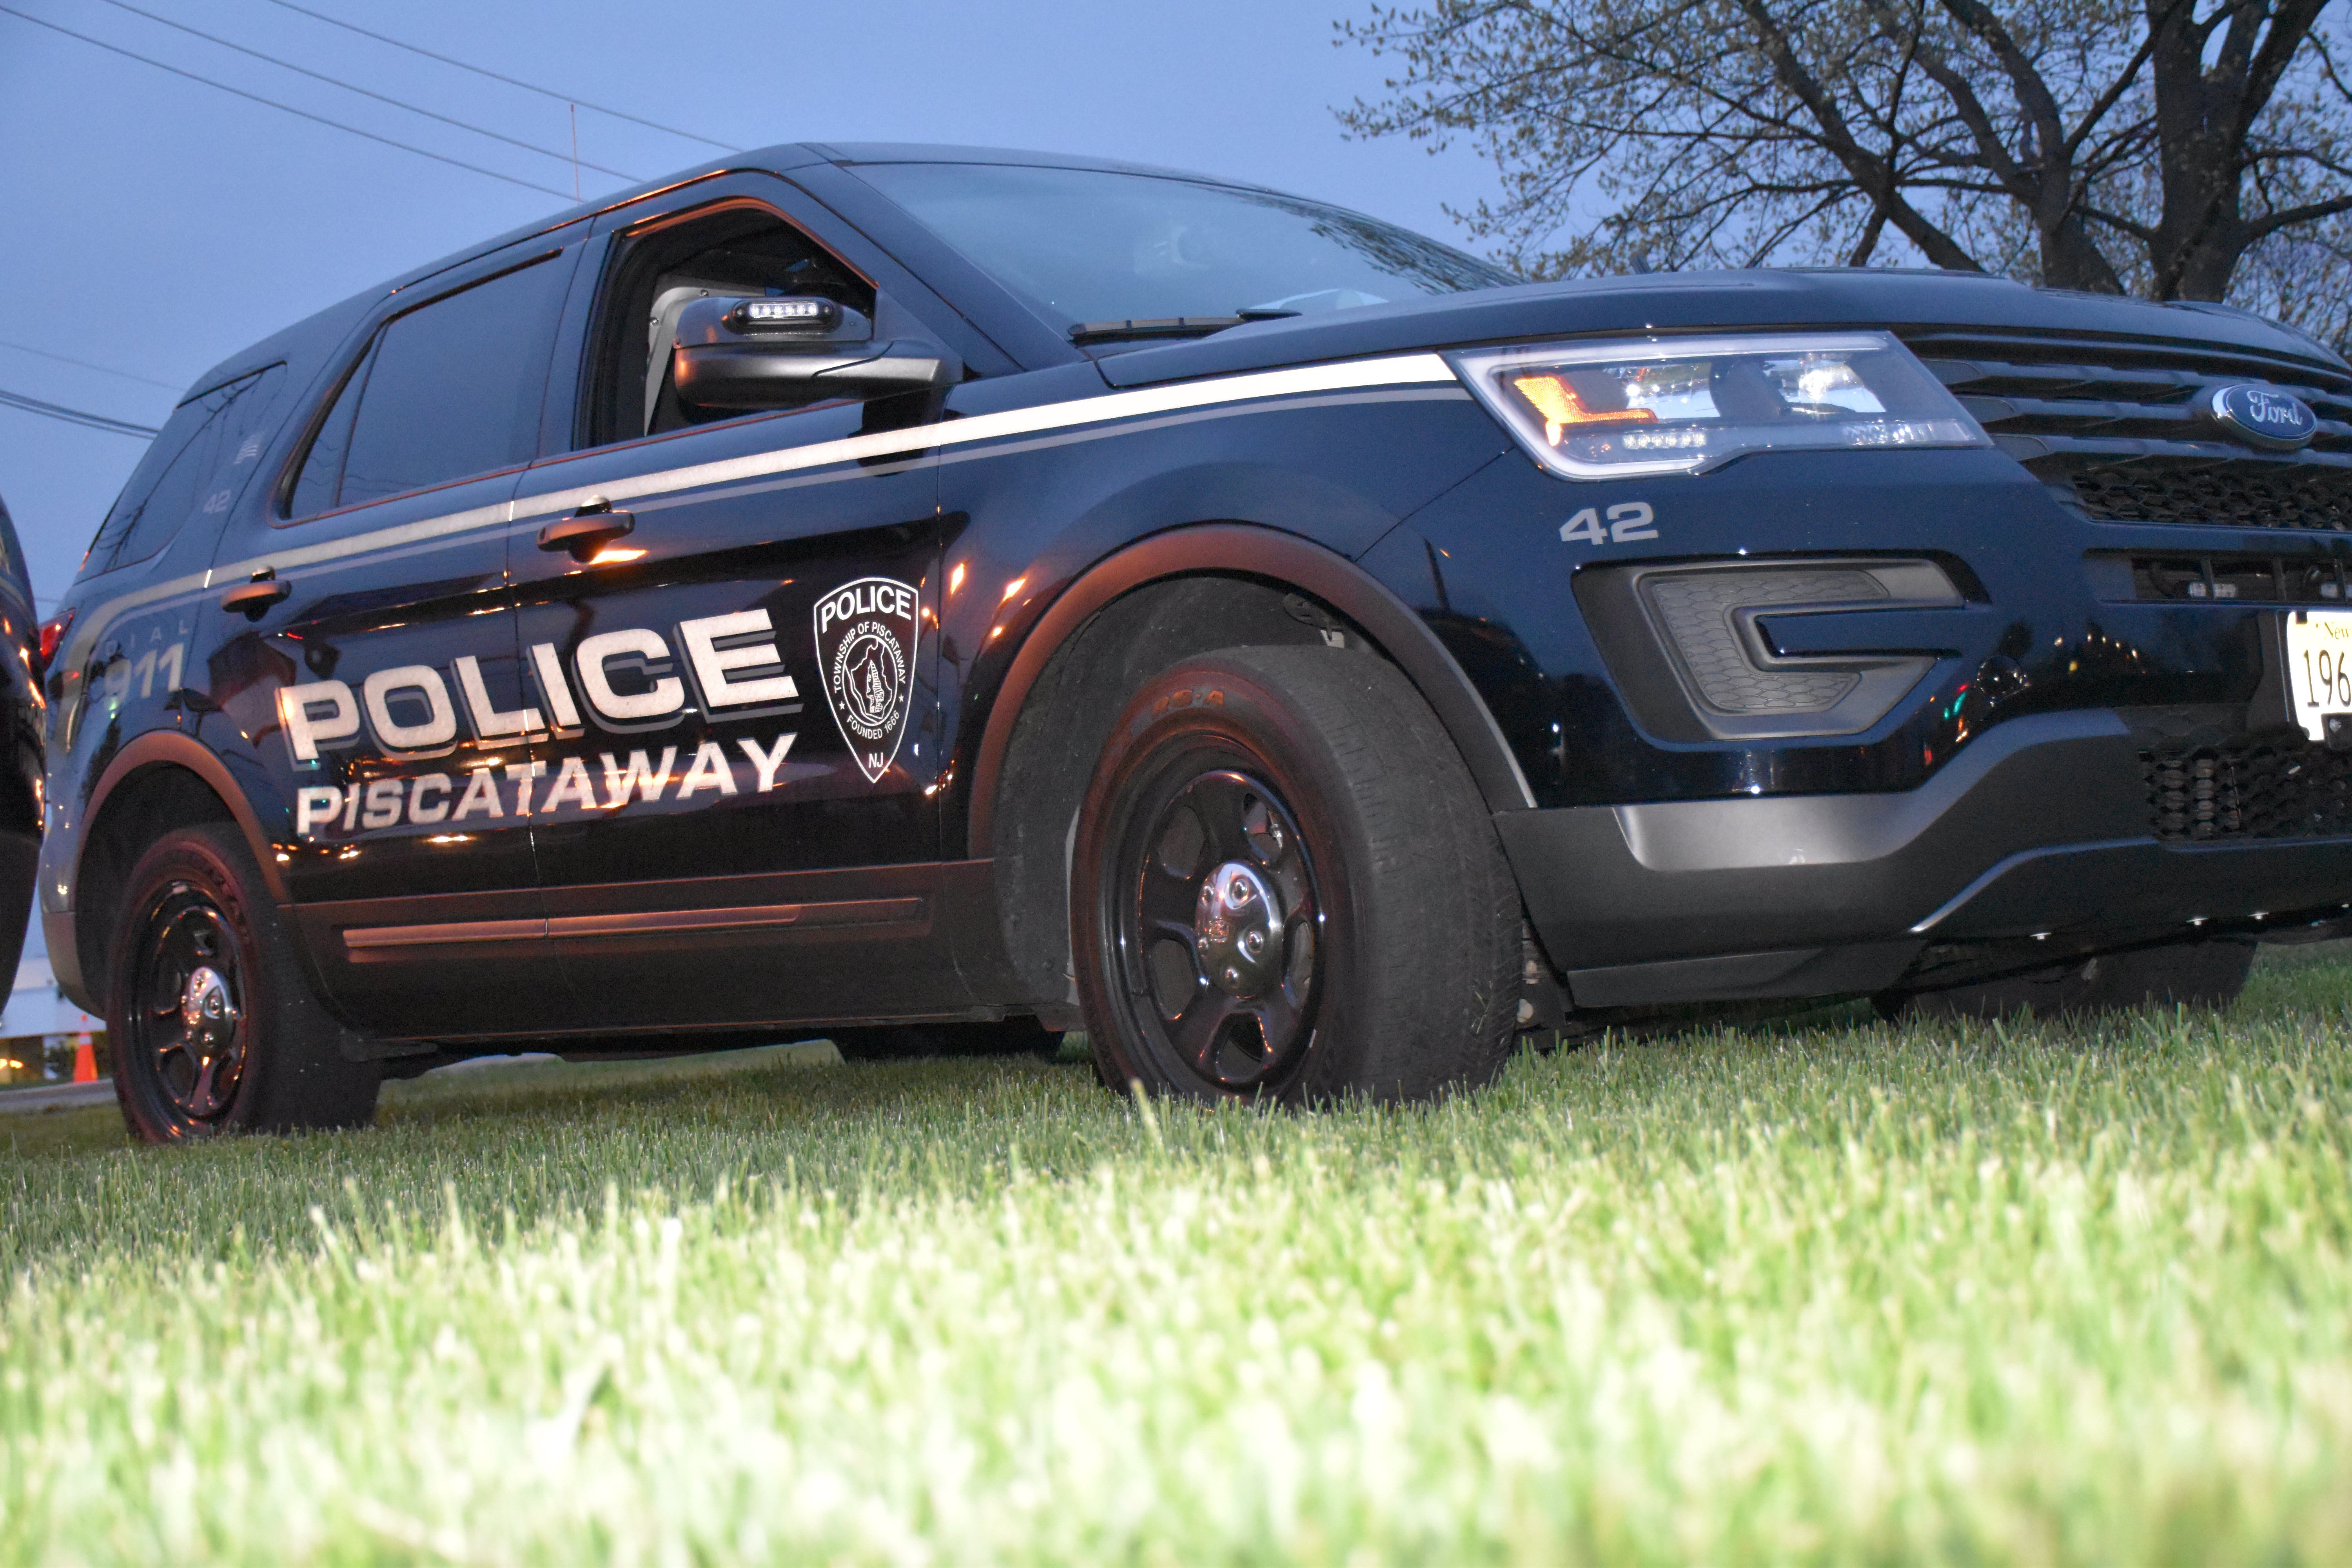 Piscataway Township Police Department, NJ Police Jobs